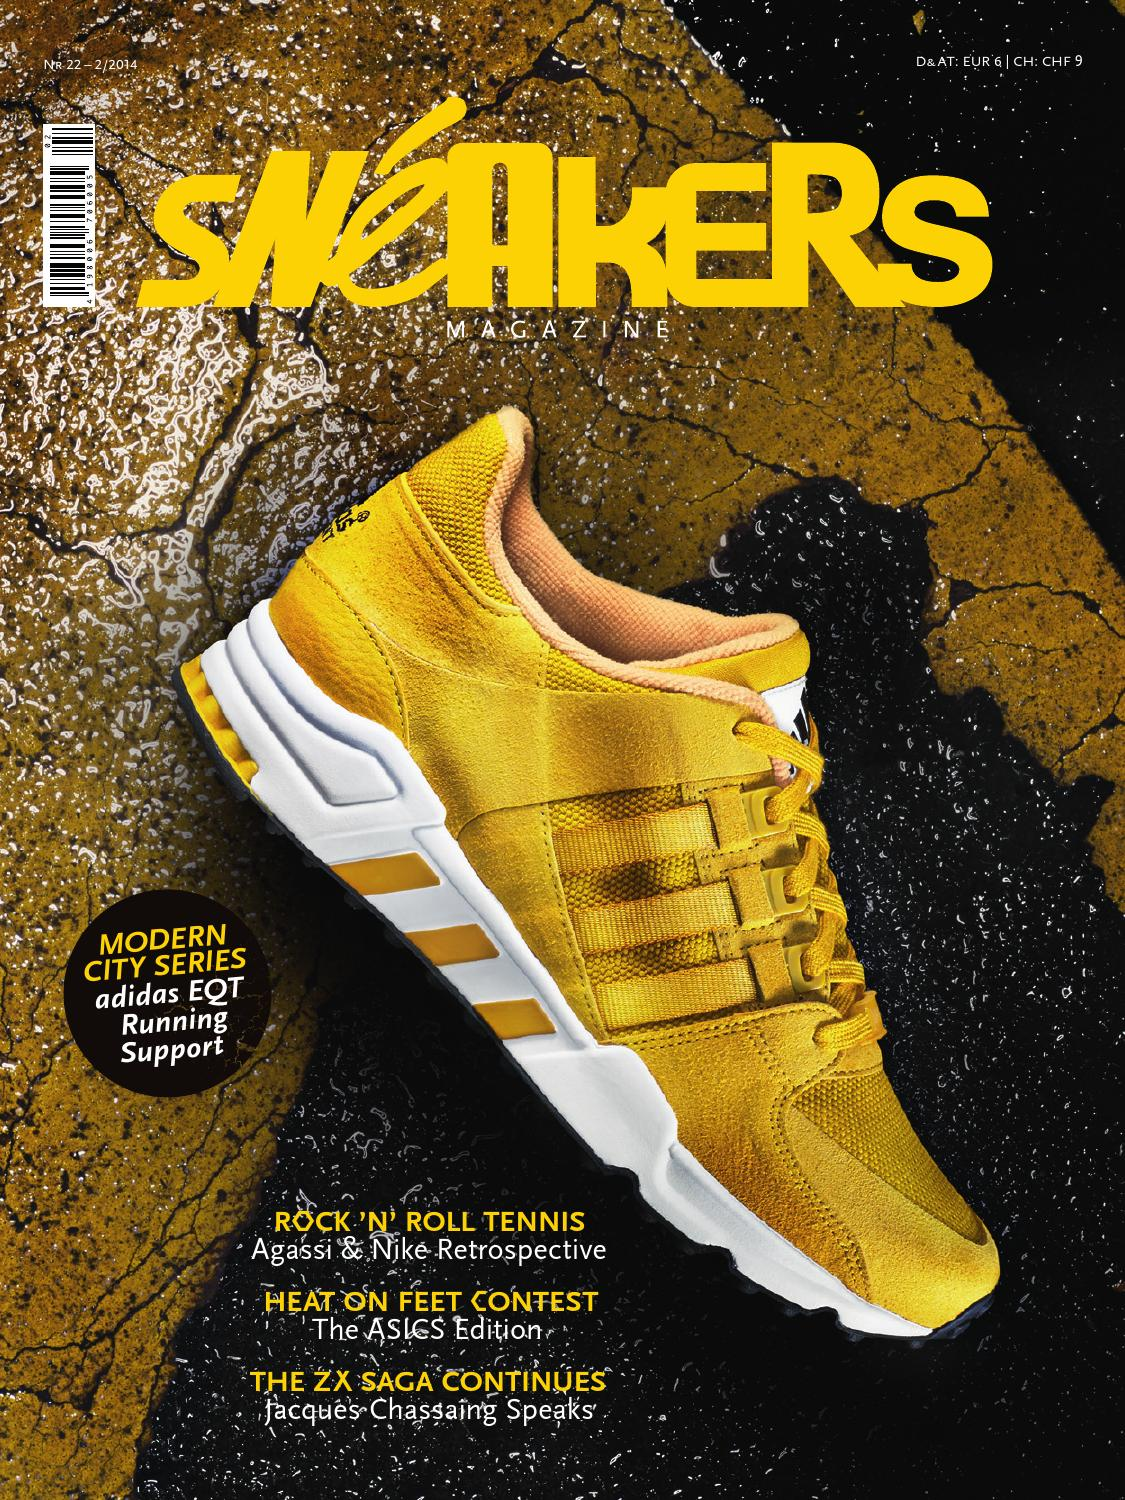 Sneakers Magazine Issue 22 by Monday Publishing GmbH issuu